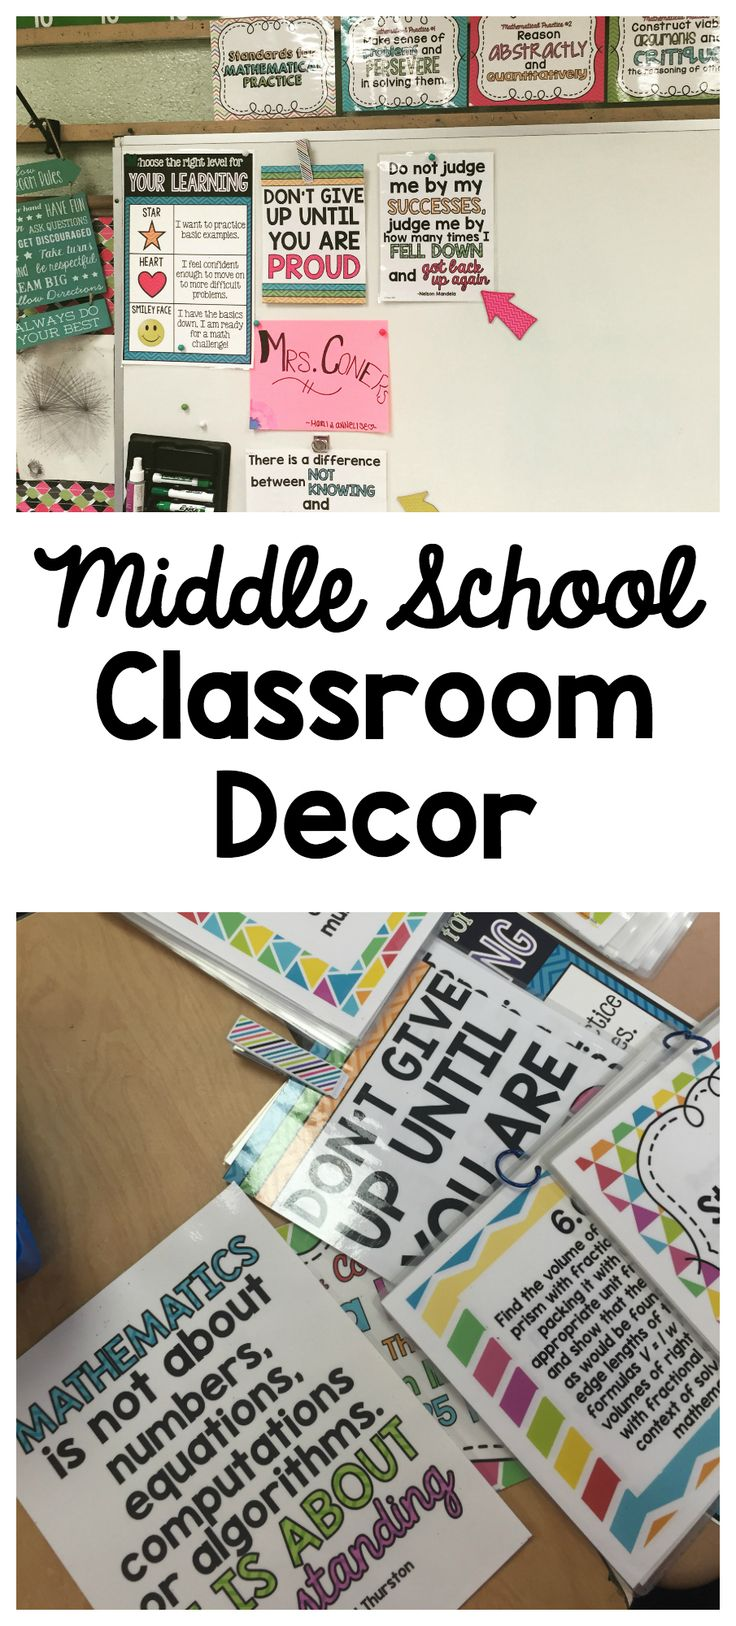 Poster design ideas for school projects - Middle School Classroom Decor More